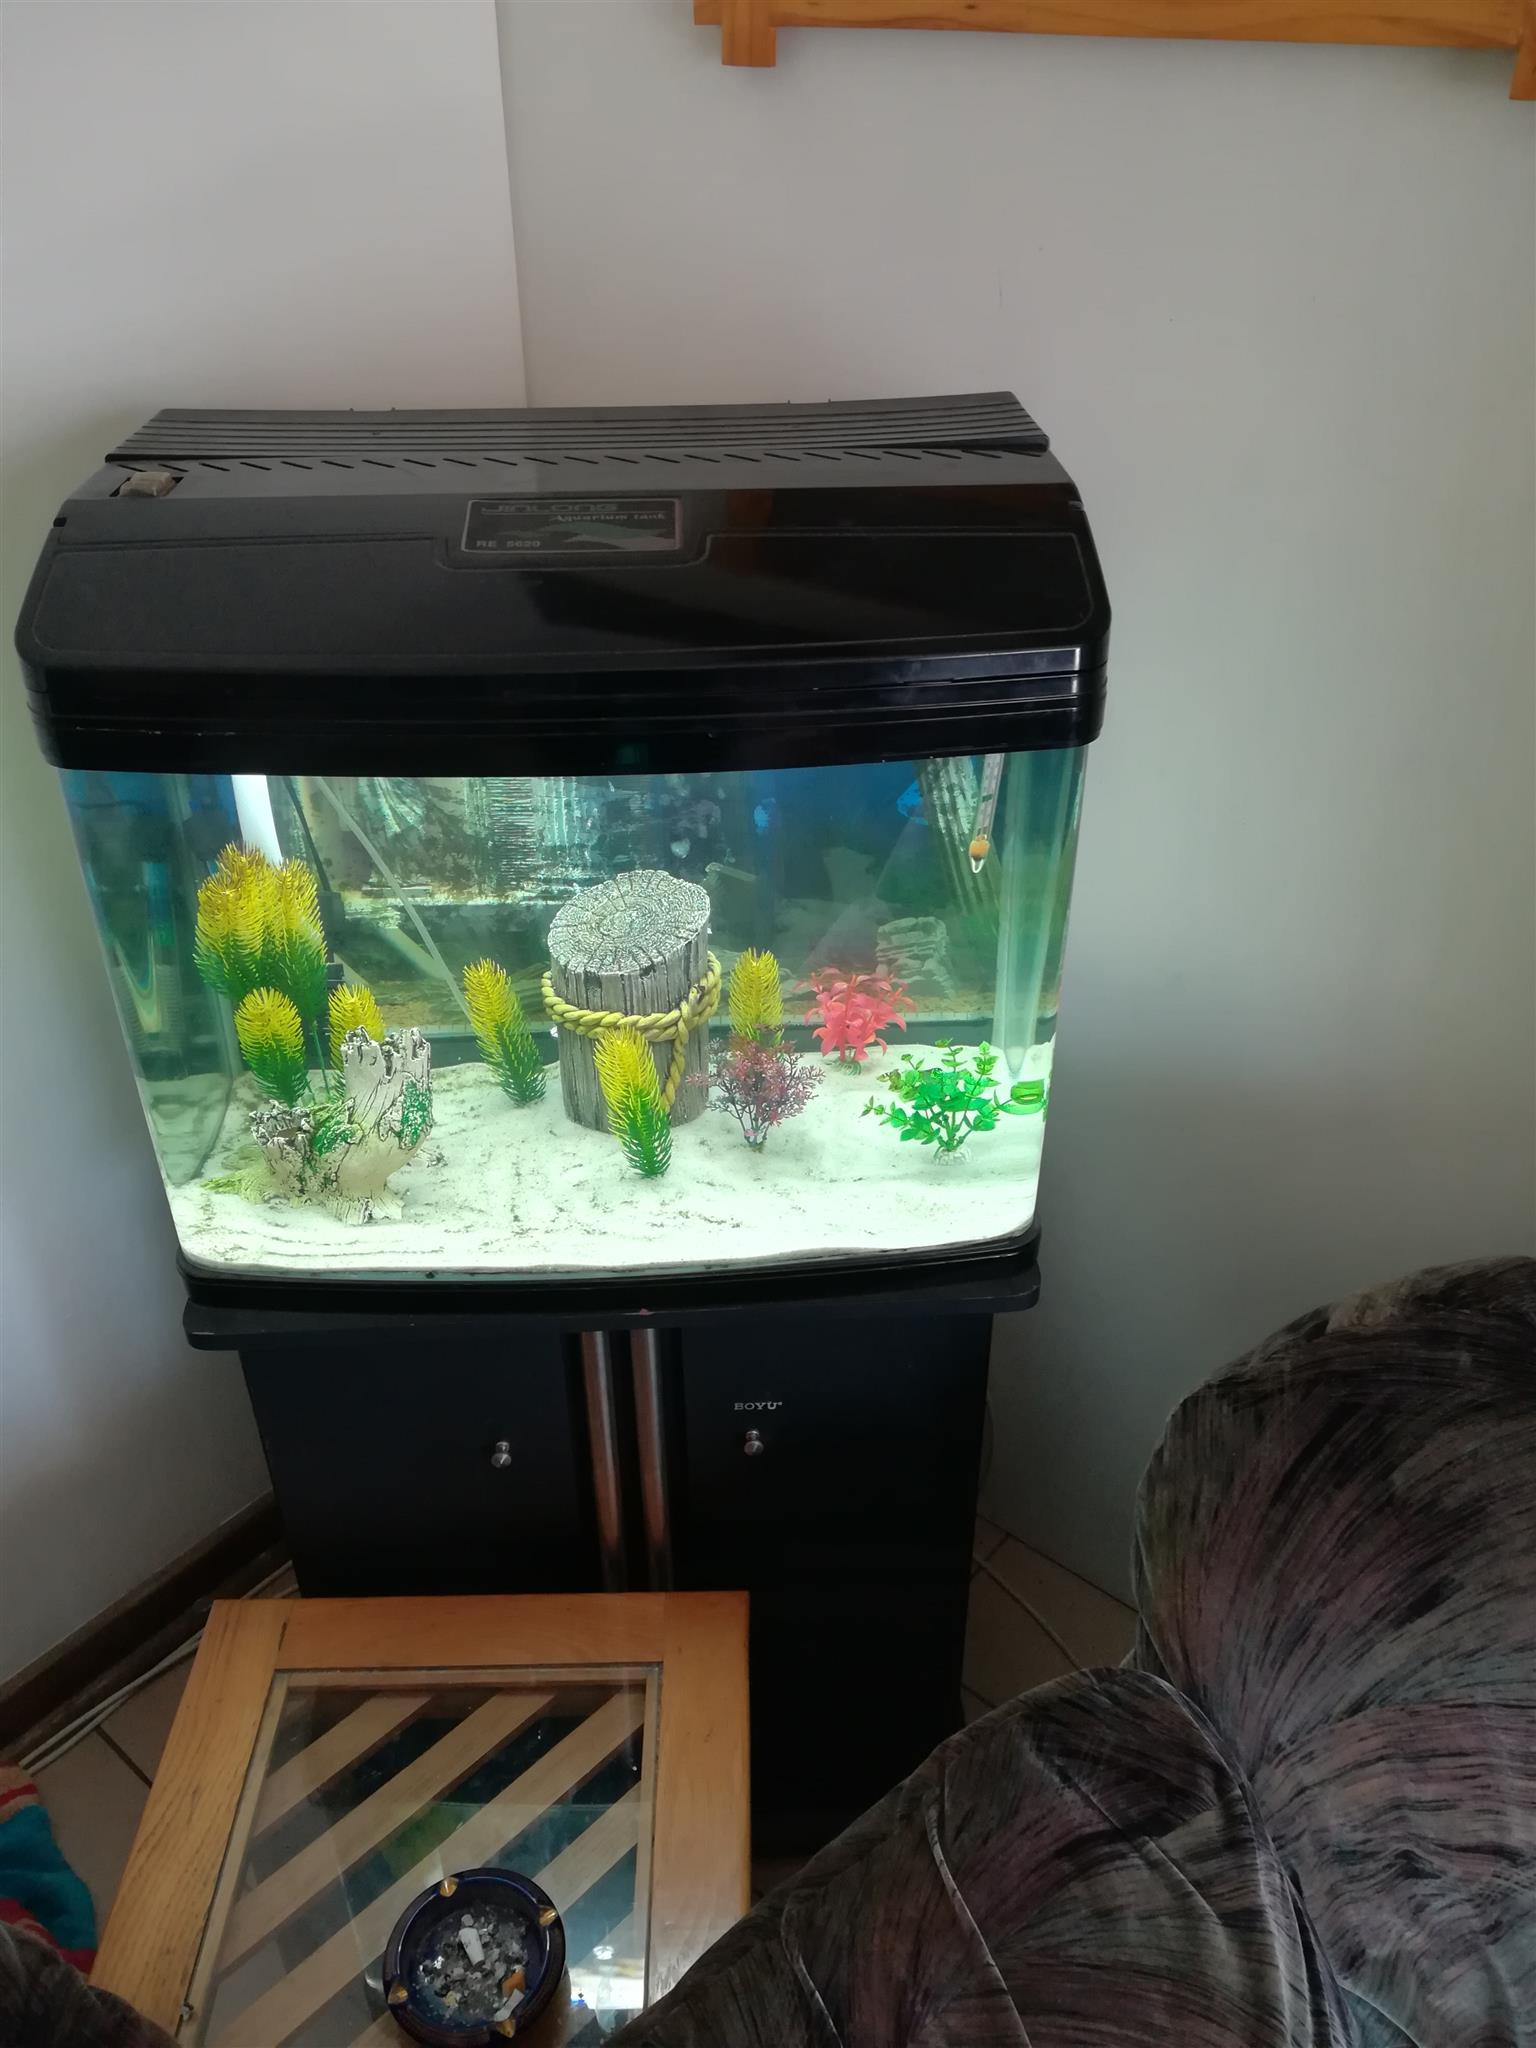 Boyu RE5620 120L fish tank with build in filtration system and 2 tube Lights , everything shown in picture